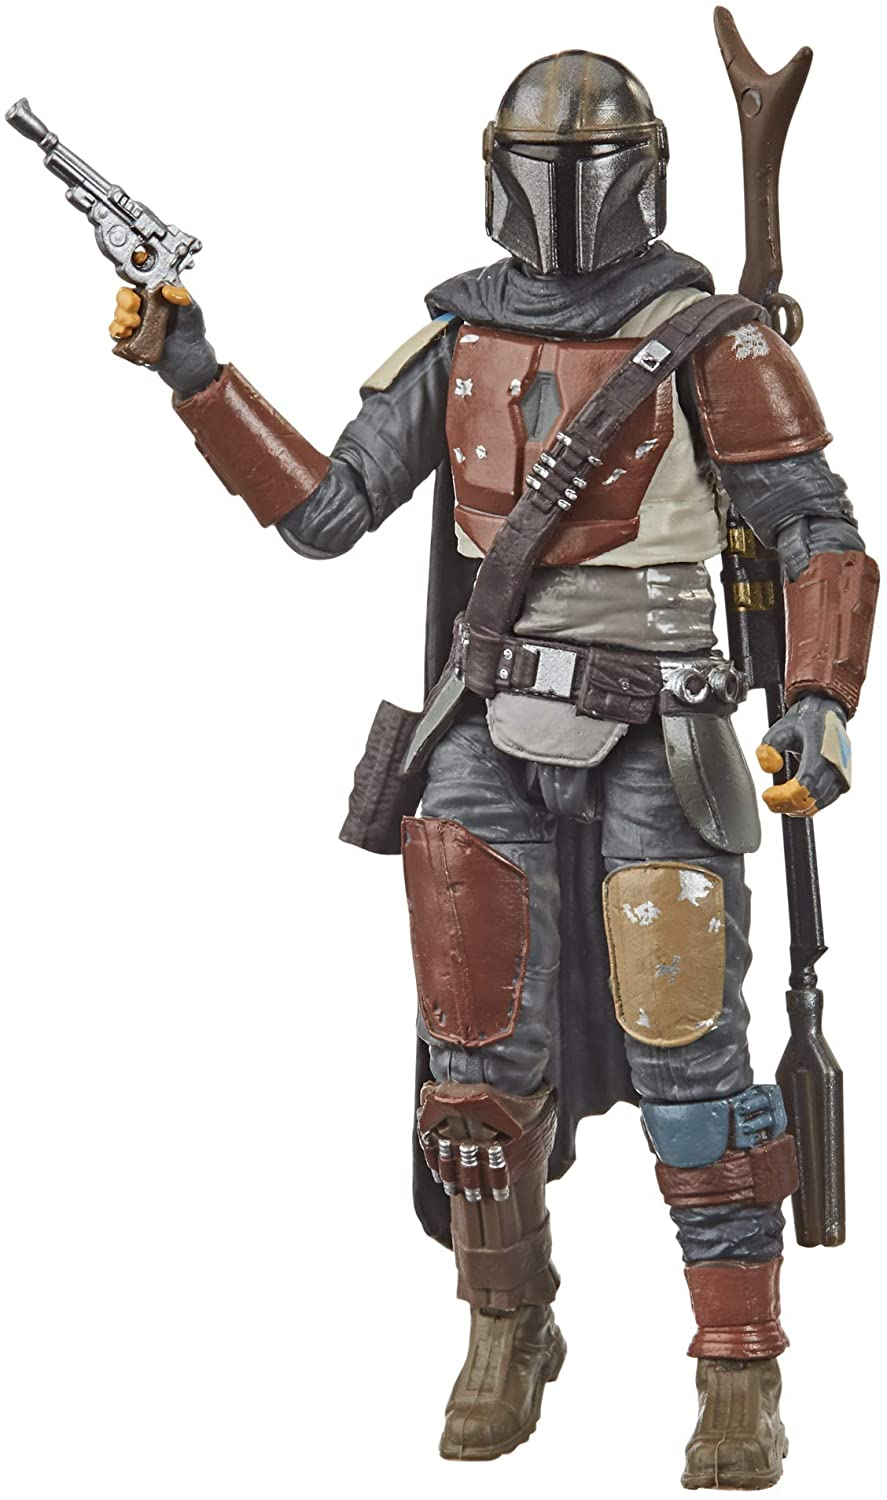 Star Wars The Mandalorian: The Vintage Collection - The Mandalorian E8086 / E5912